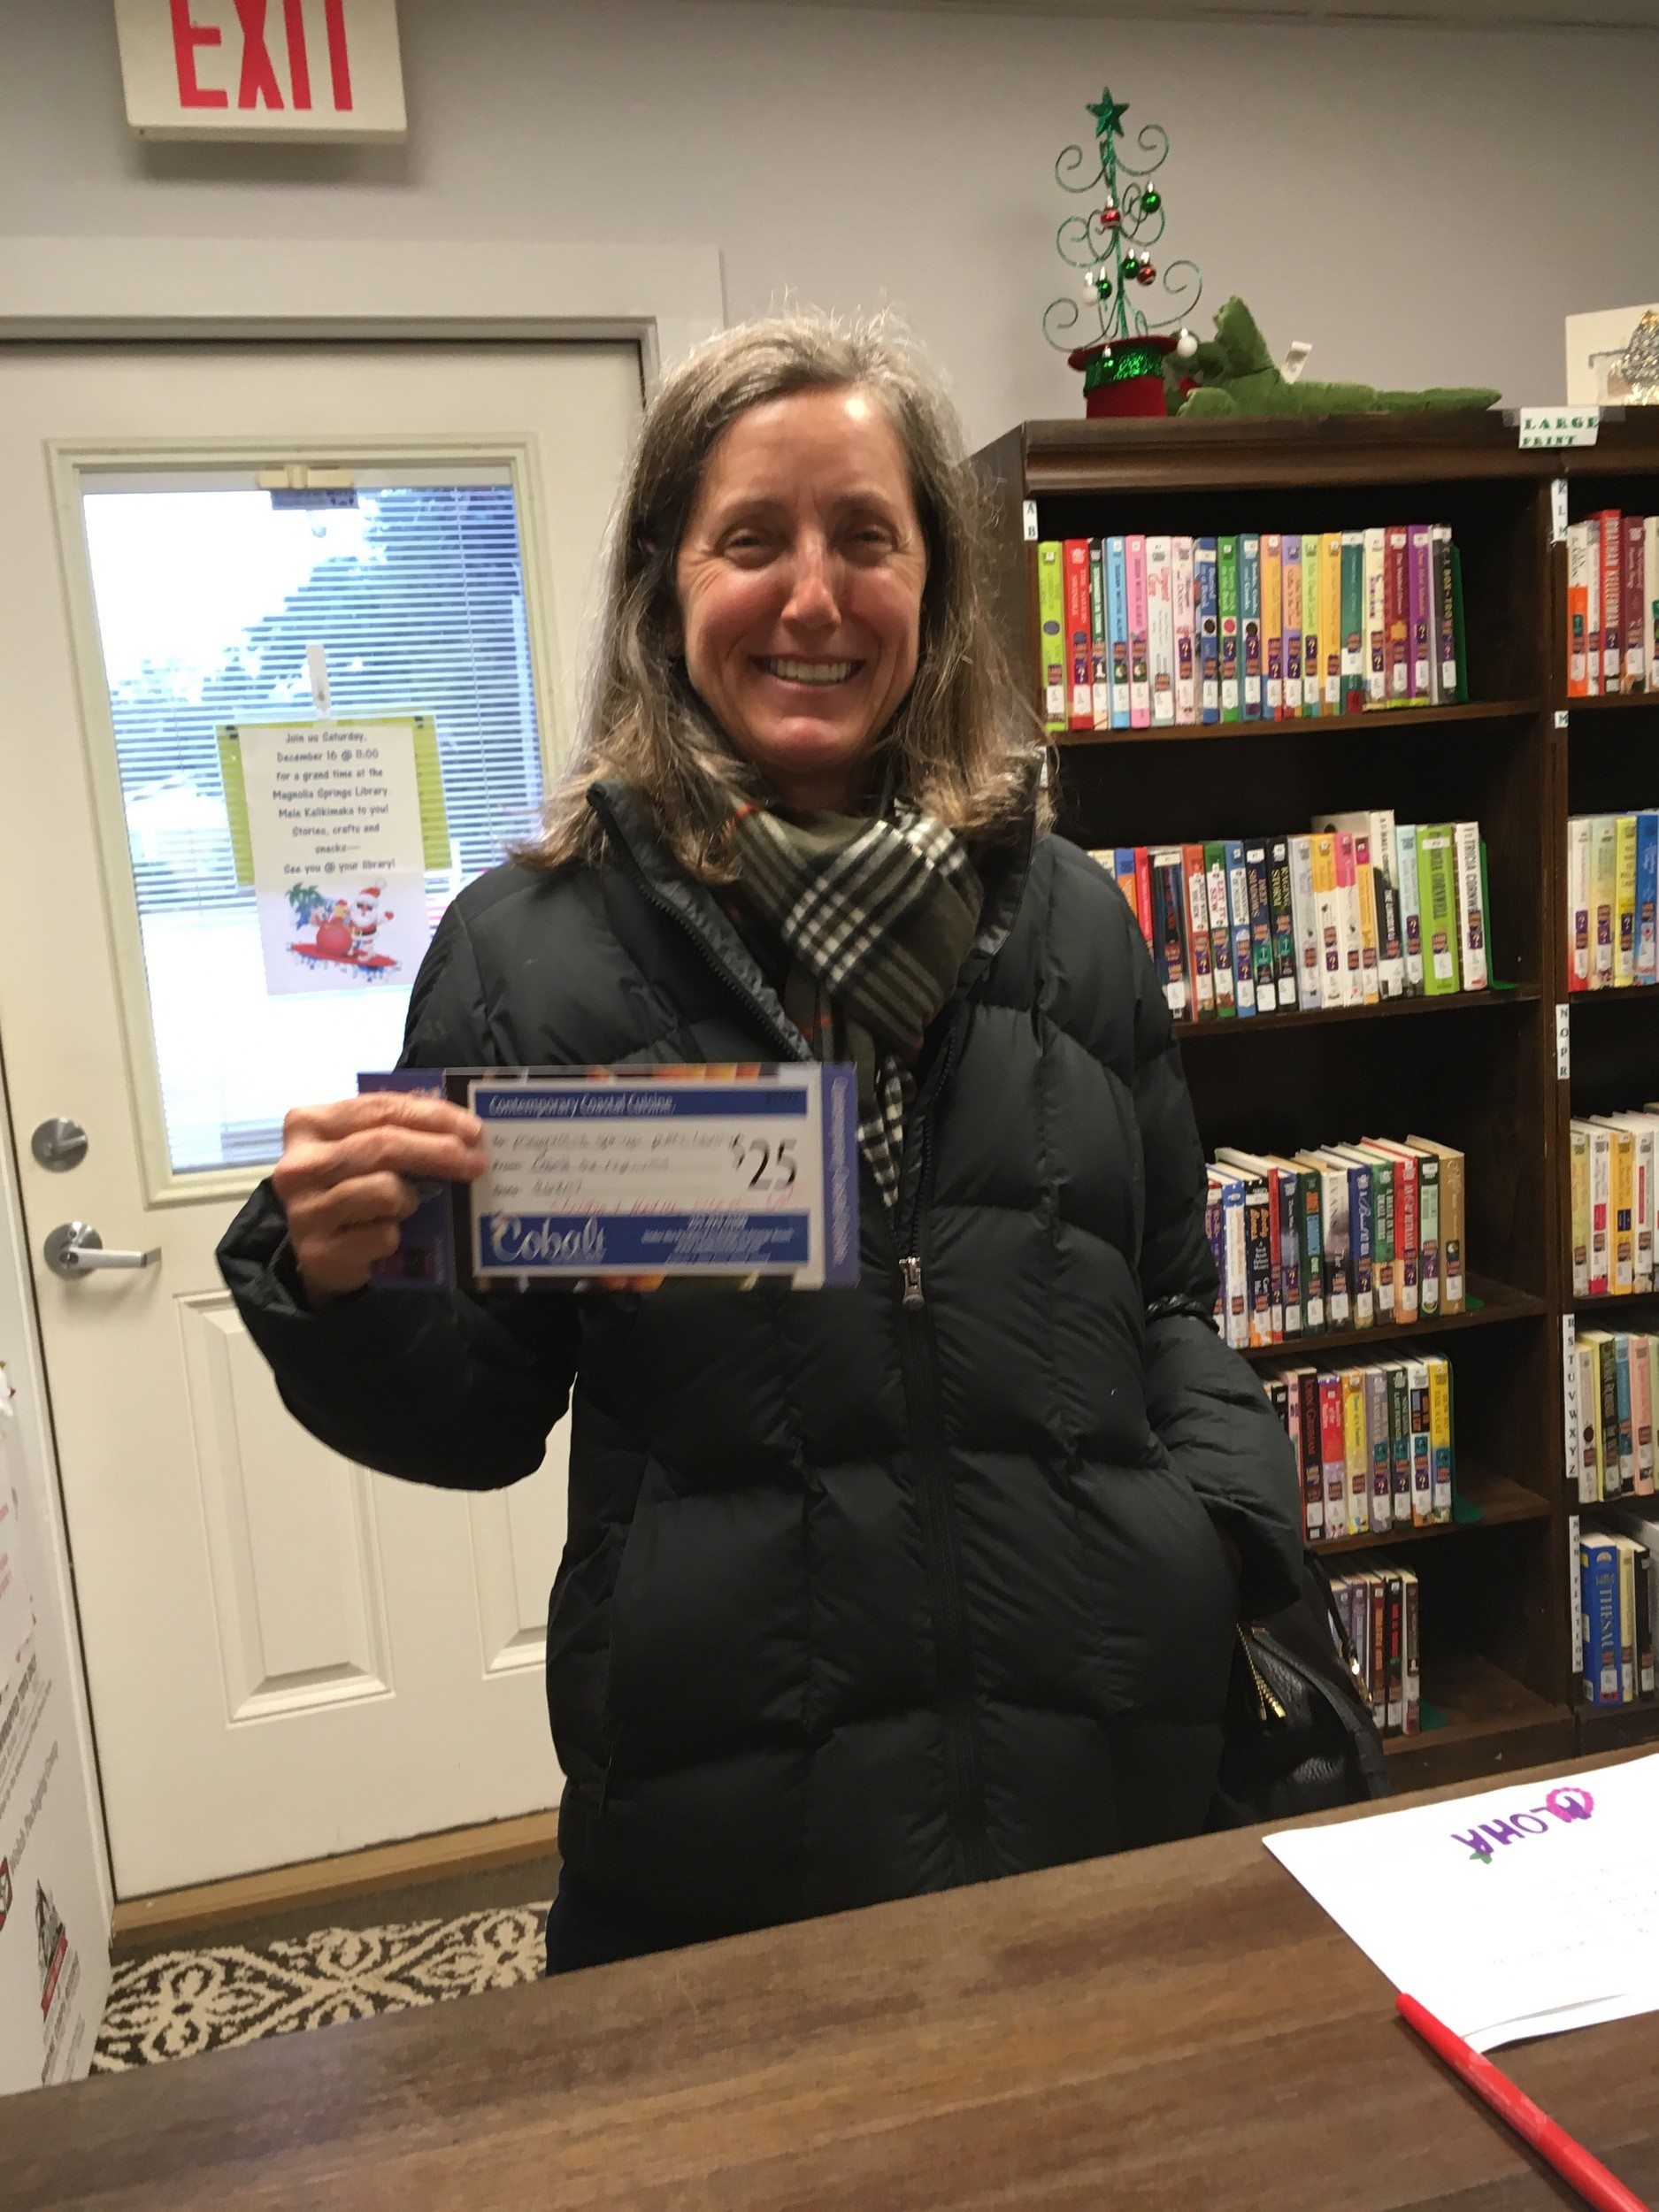 Proud supporter of The Magnolia Springs Library Kristin Weaver with her gift certificate to Cobalt's Restaurant.